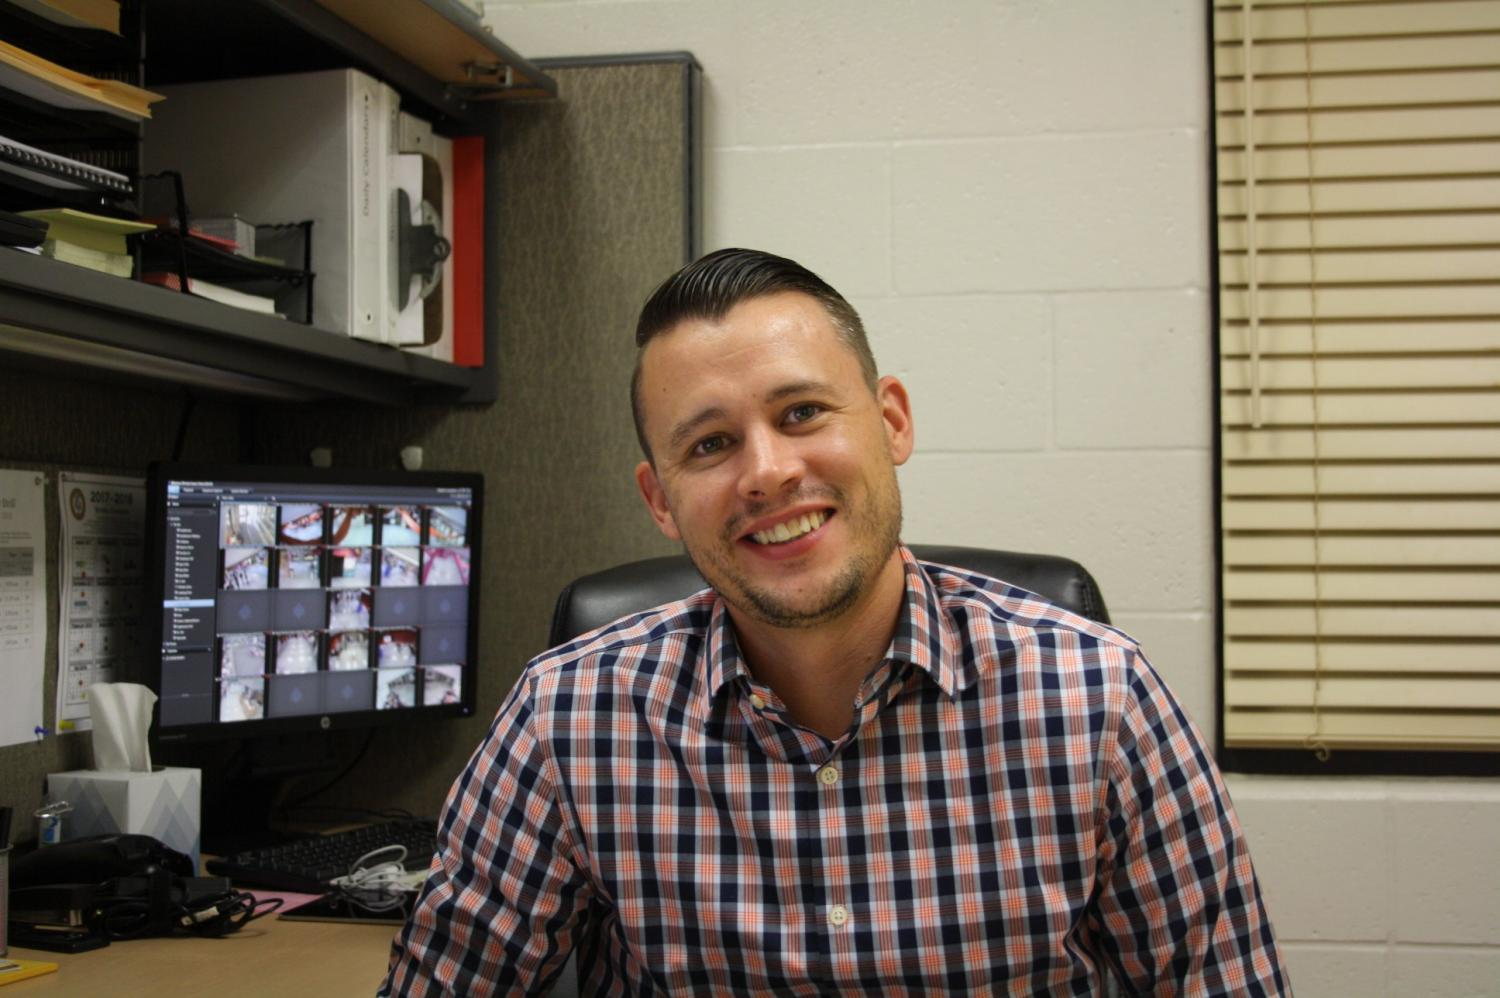 Mr. Josh Fabish took a job in Florida after 13 years of employment, first as a math teacher, then as an assistant principal. His last day was October 6.